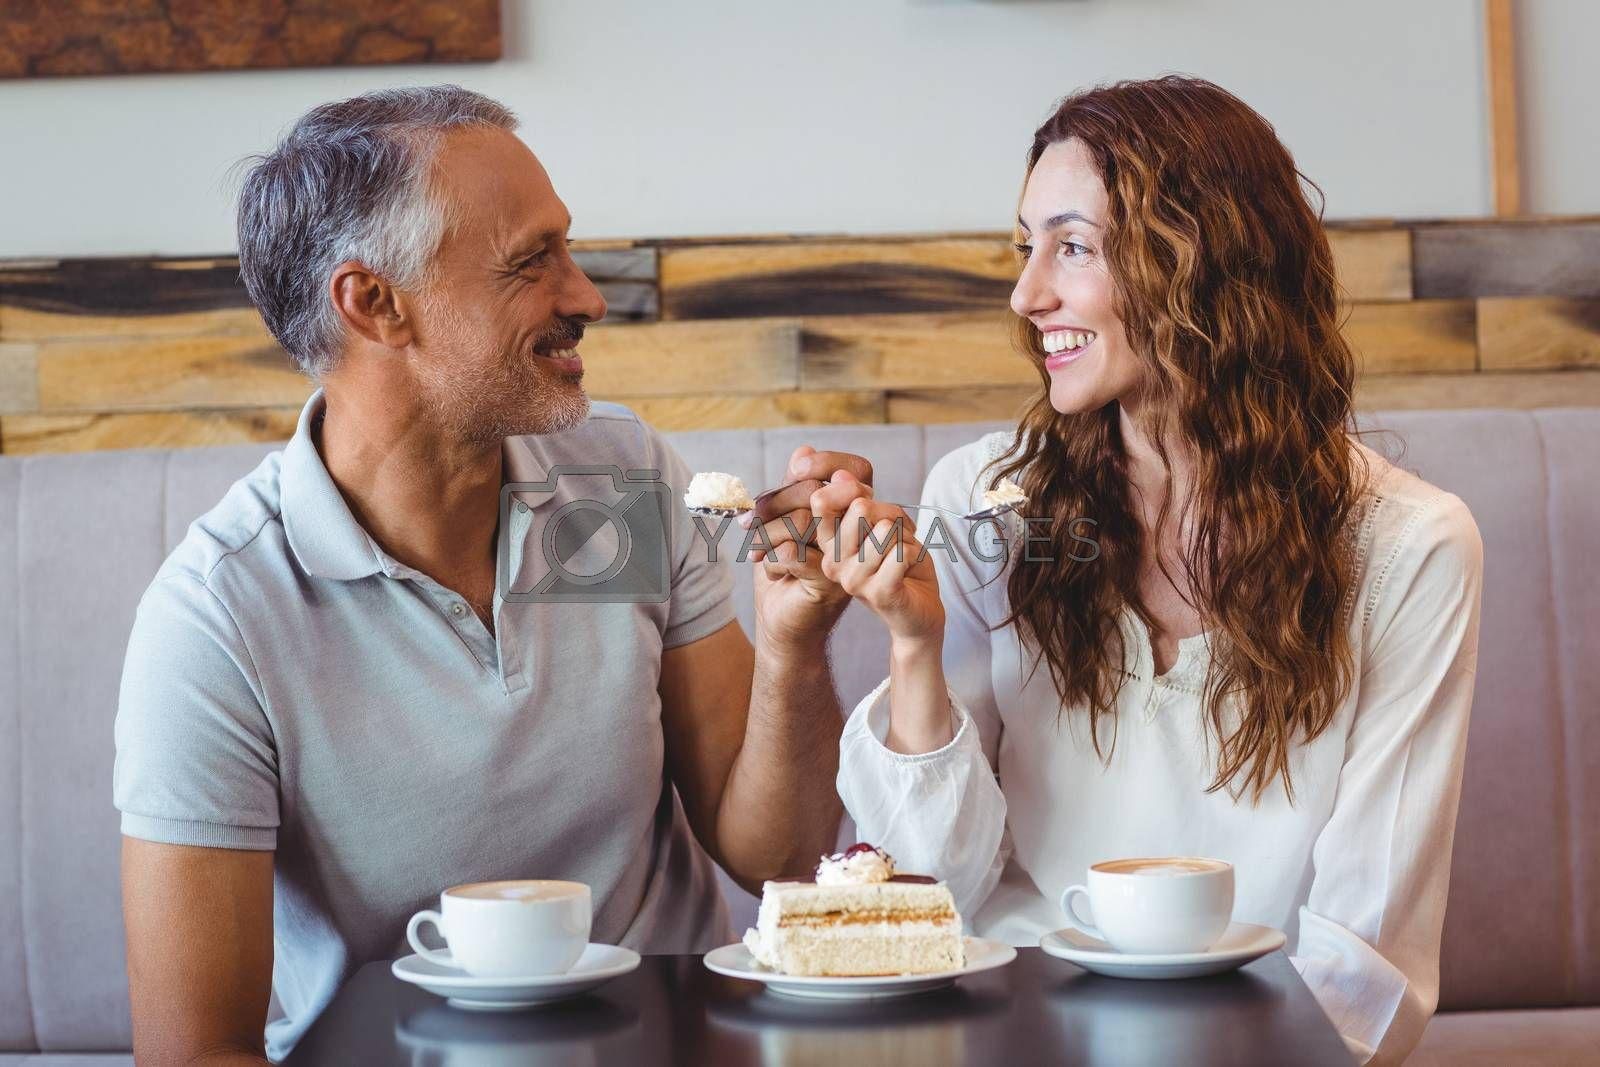 Royalty free image of Casual couple having coffee and cake together by Wavebreakmedia